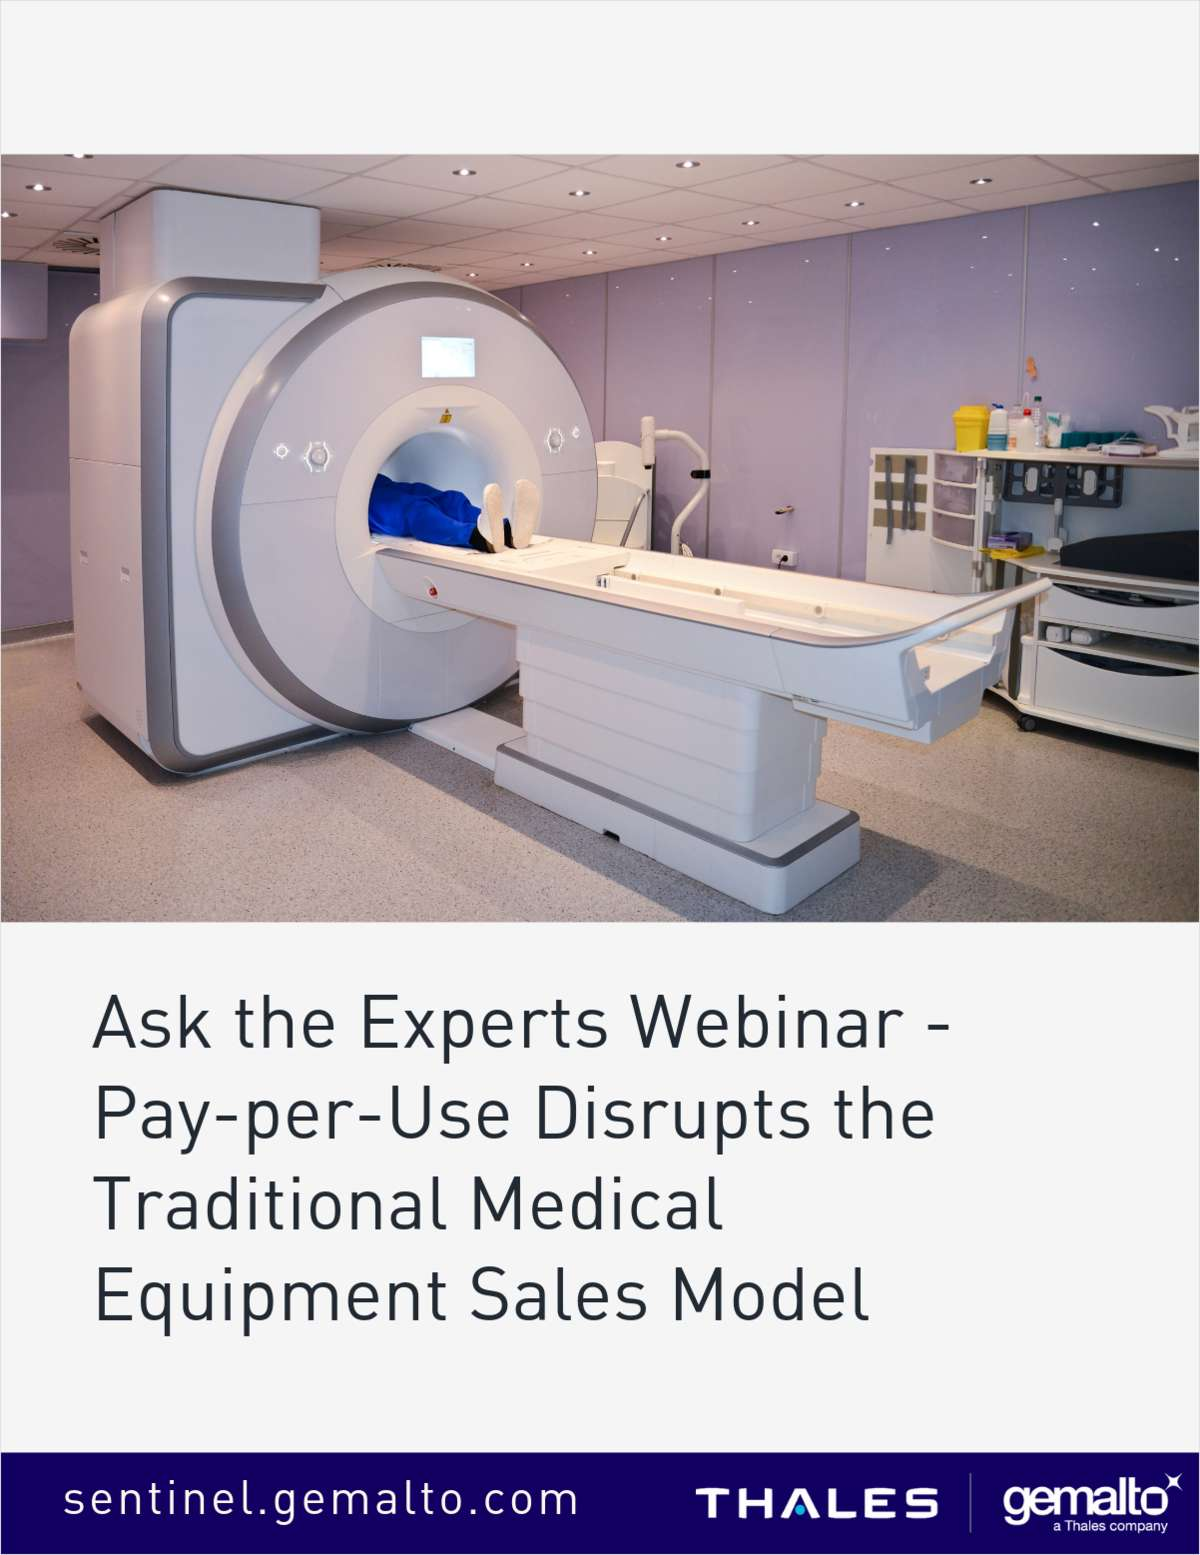 Pay-per-Use Disrupts the Traditional Medical Equipment Sales Model